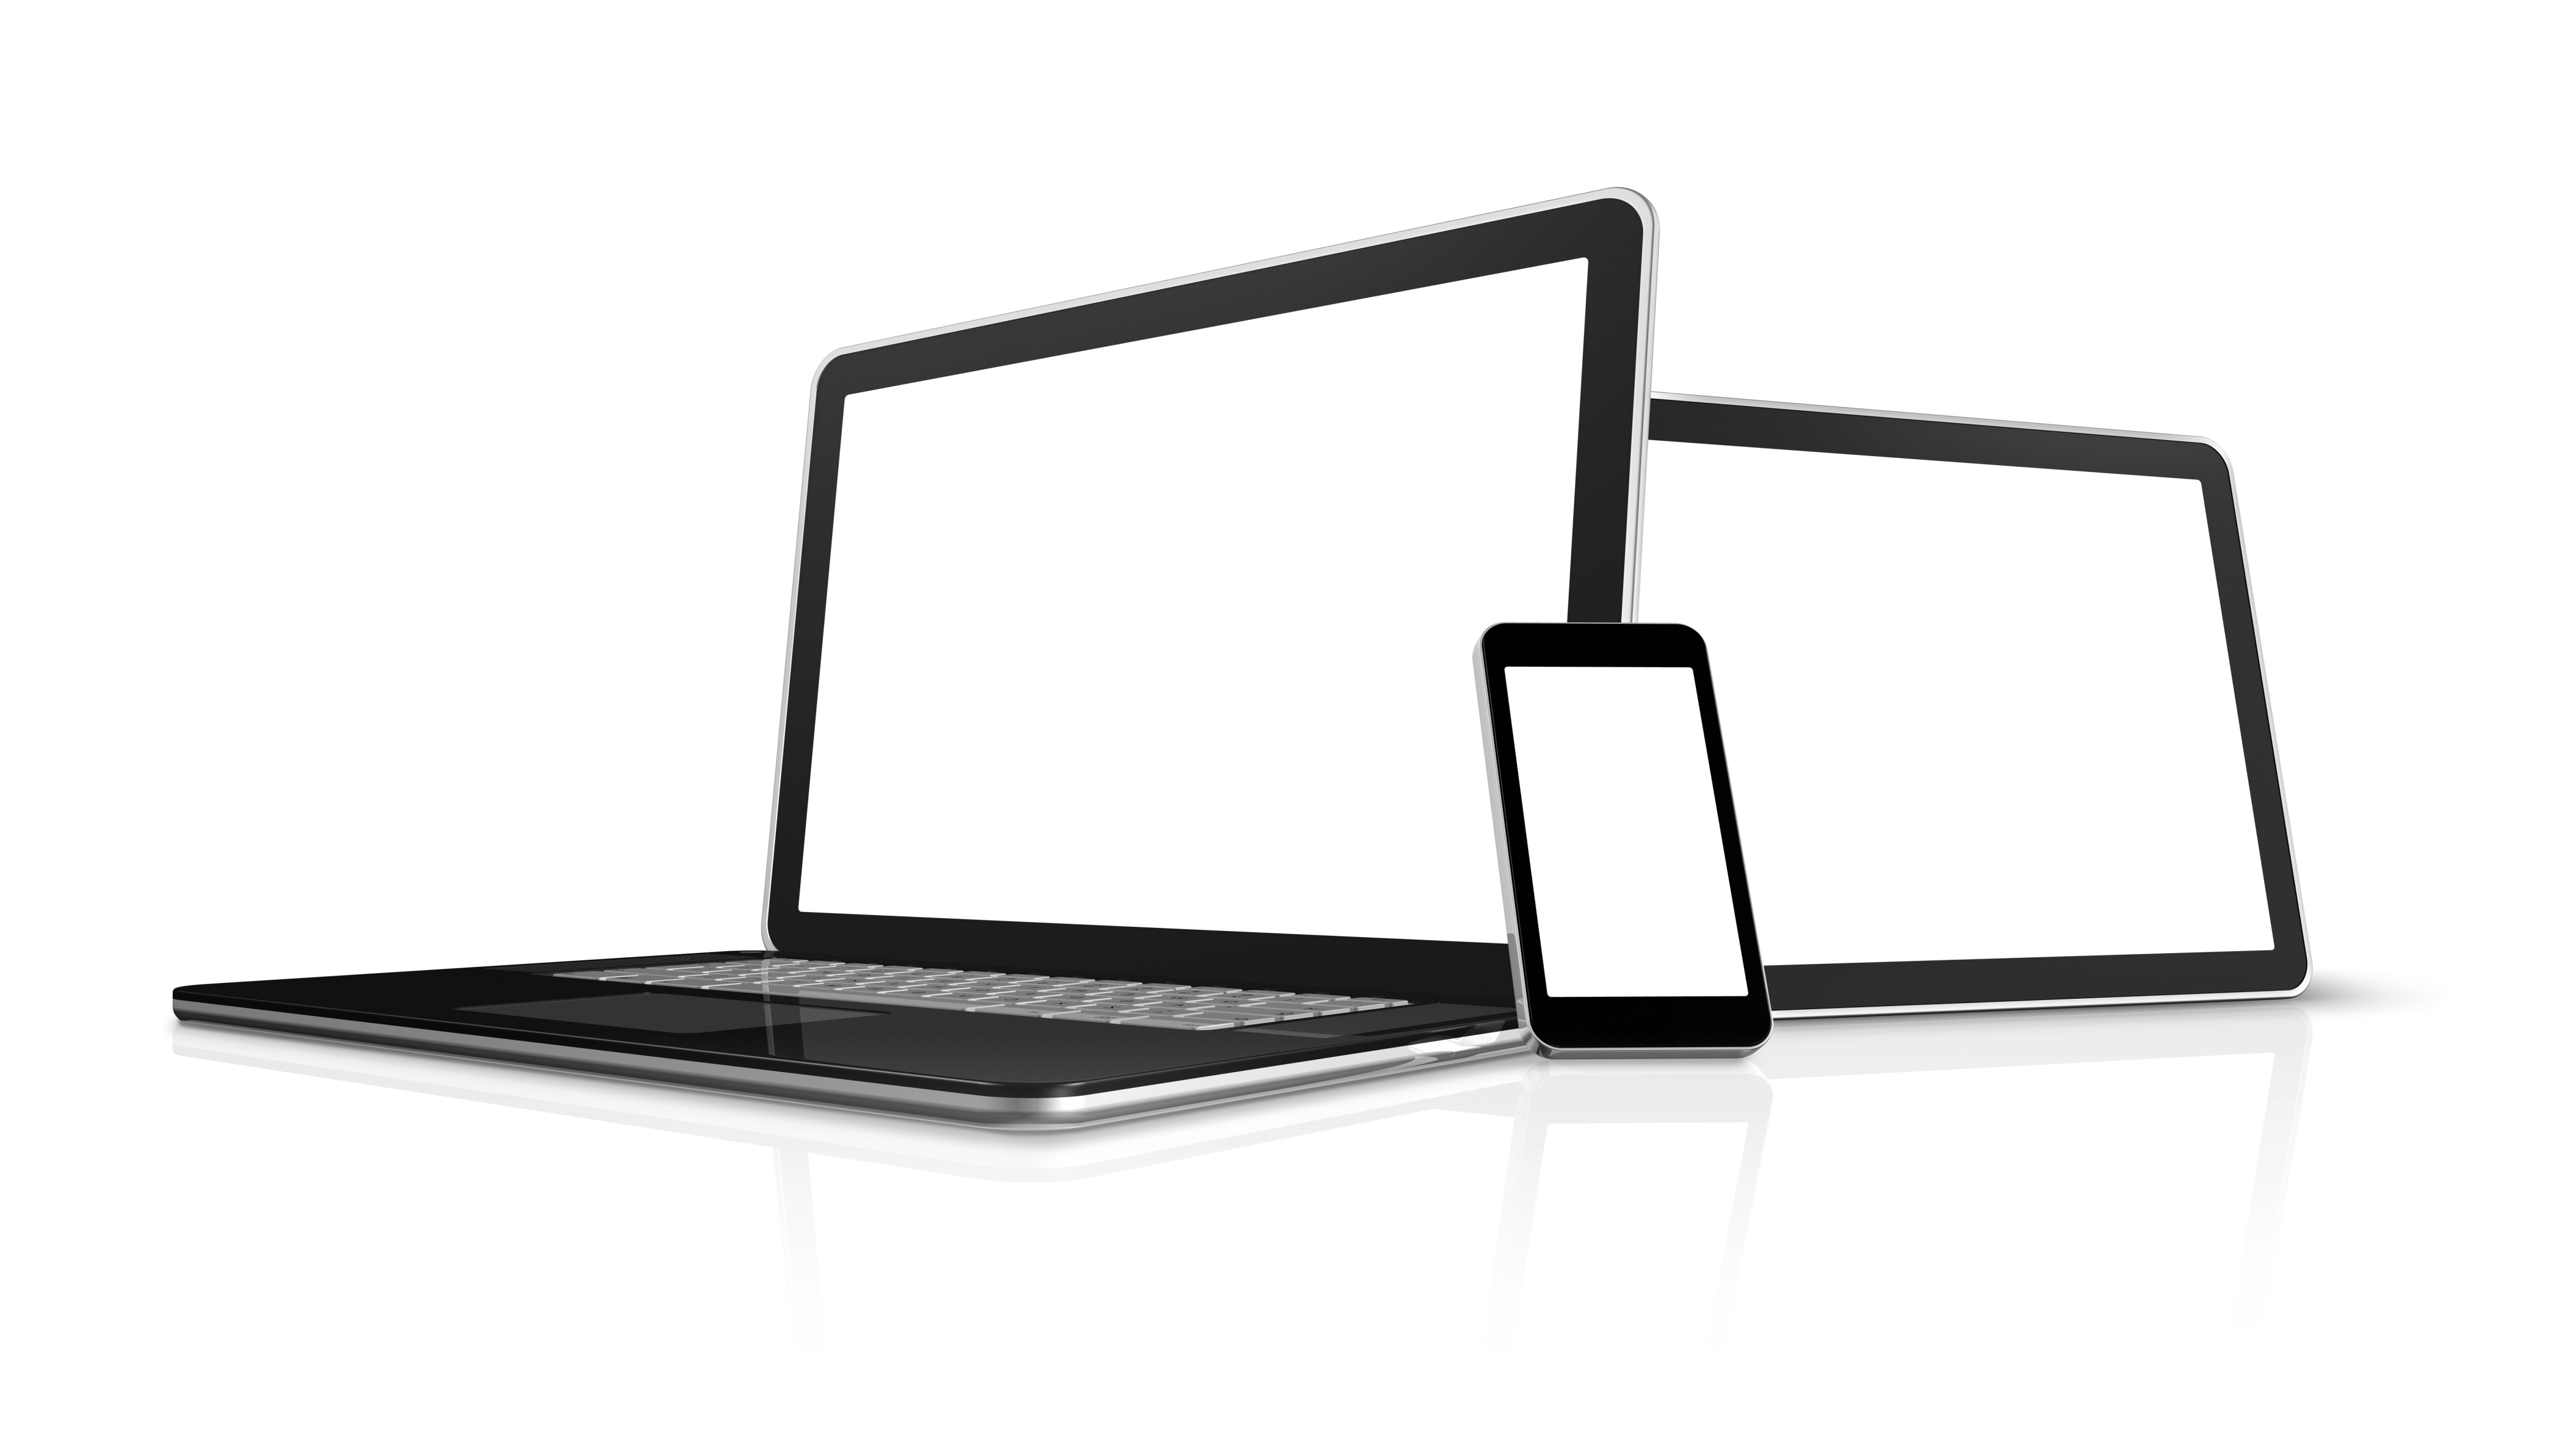 Tablet Shipments To Pass Laptop Shipments This Year Idc